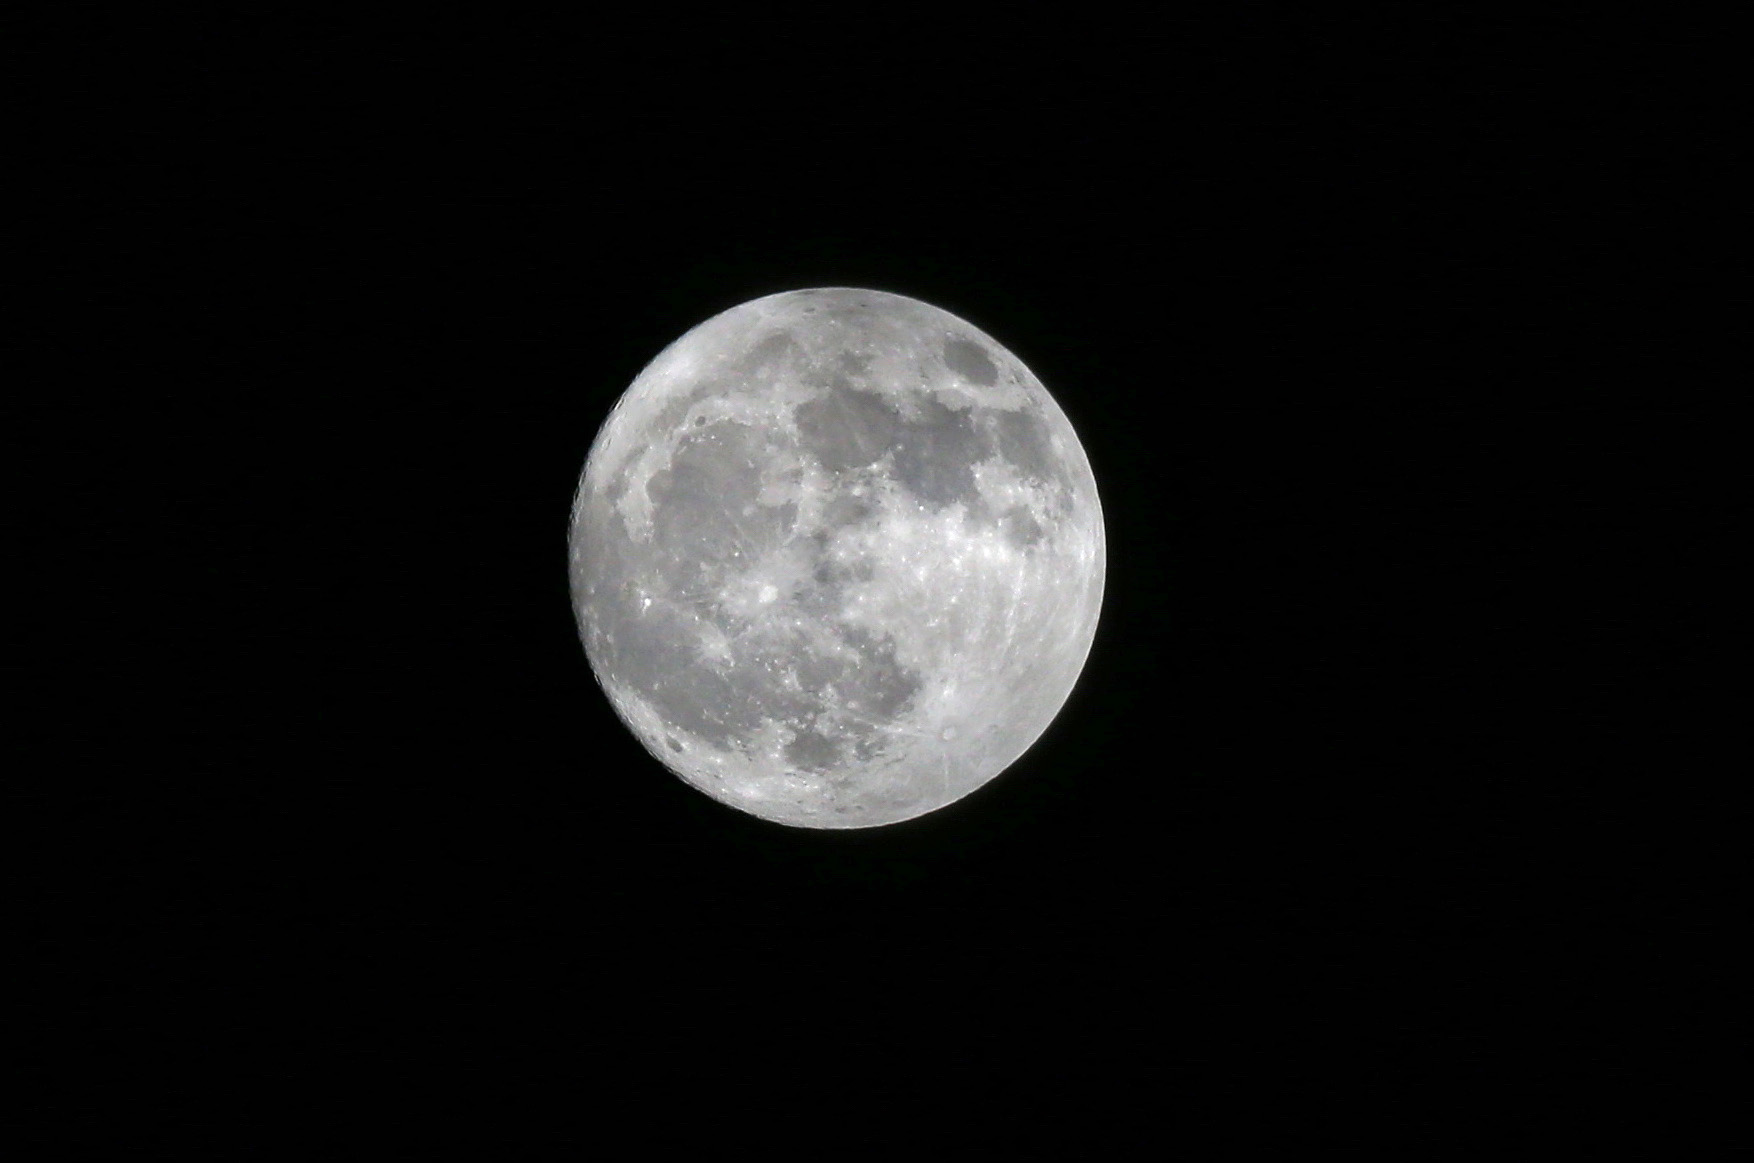 fpn_1509849139__2_birthday_moon.jpg